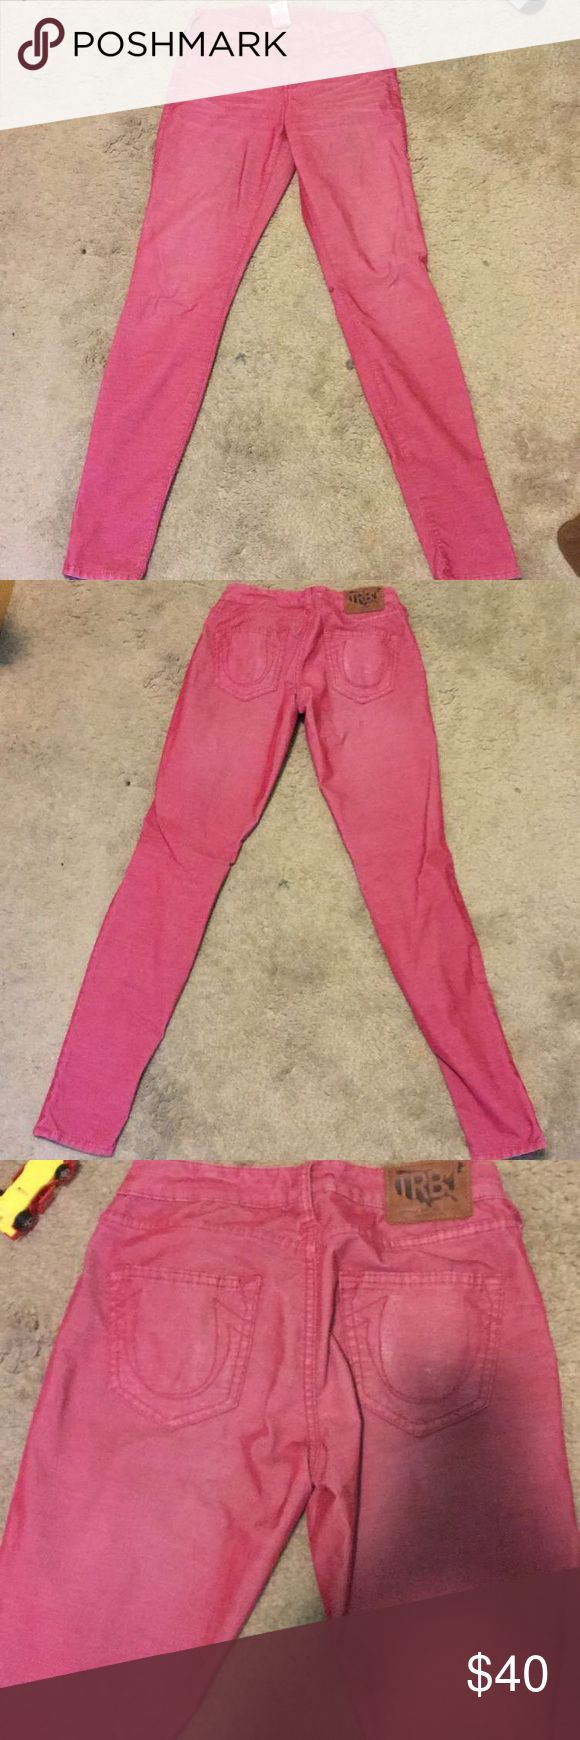 Size 25 True Religion Jeans Size 25, True Religion Skinny Jeans, Cotton, polyester and spandex material. Reddish/Burgundy color True Religion Jeans Skinny